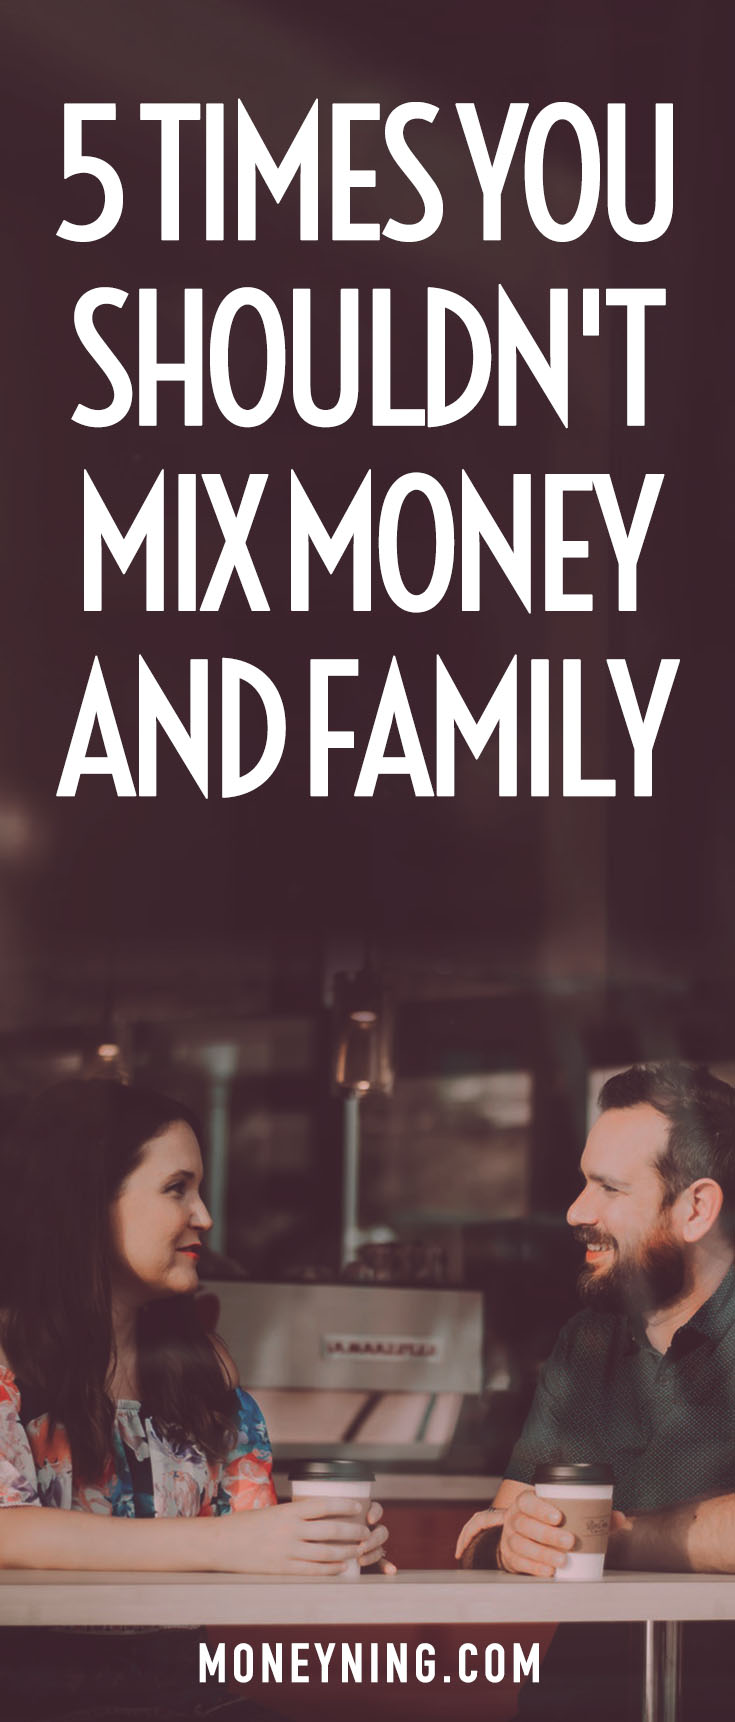 mixing money and family